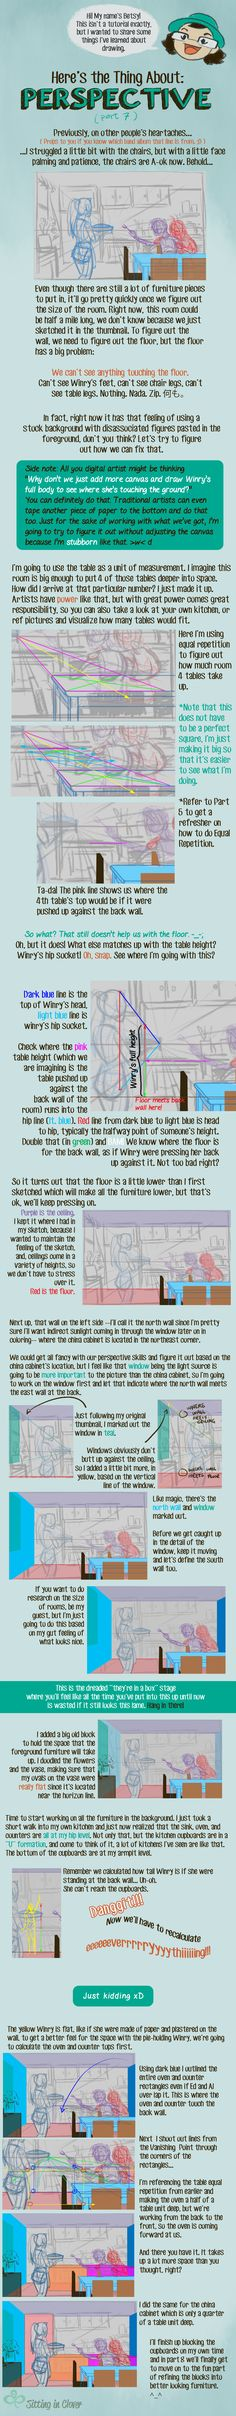 07 Here's the Thing About 1 Point Perspective by betsyillustration on DeviantArt